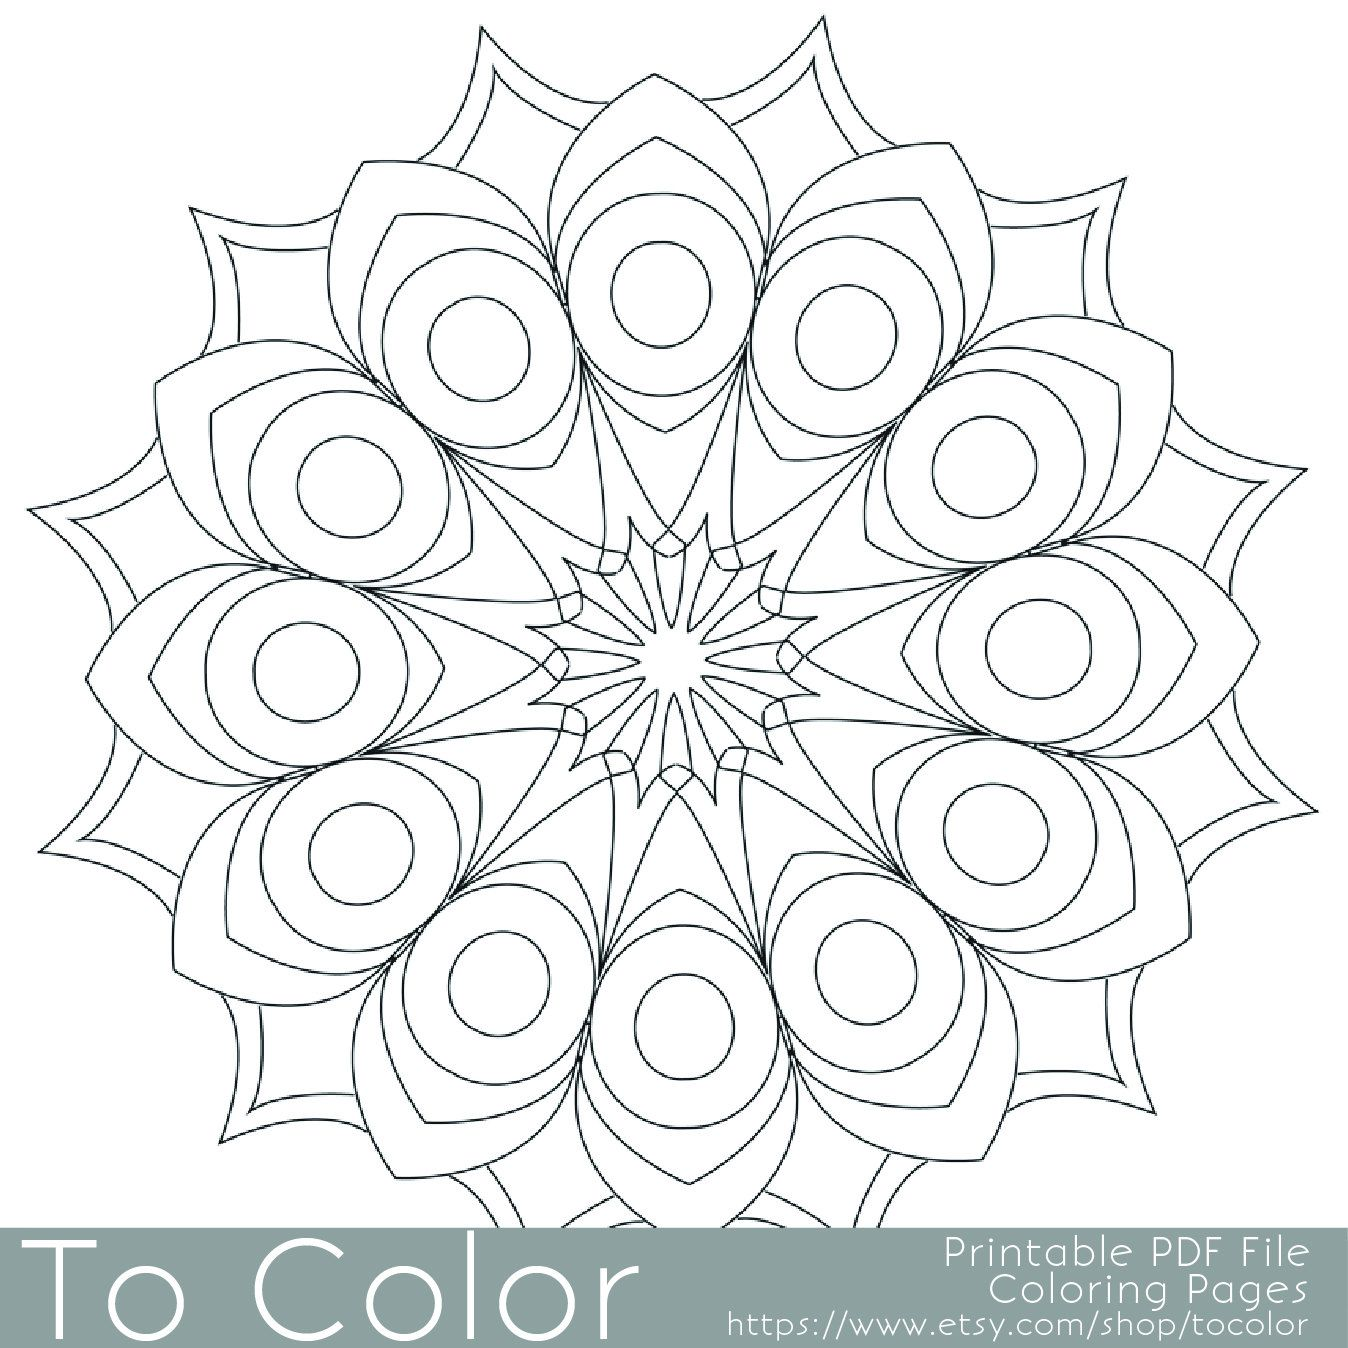 Printable Circular Mandala Easy Coloring Pages For Adults